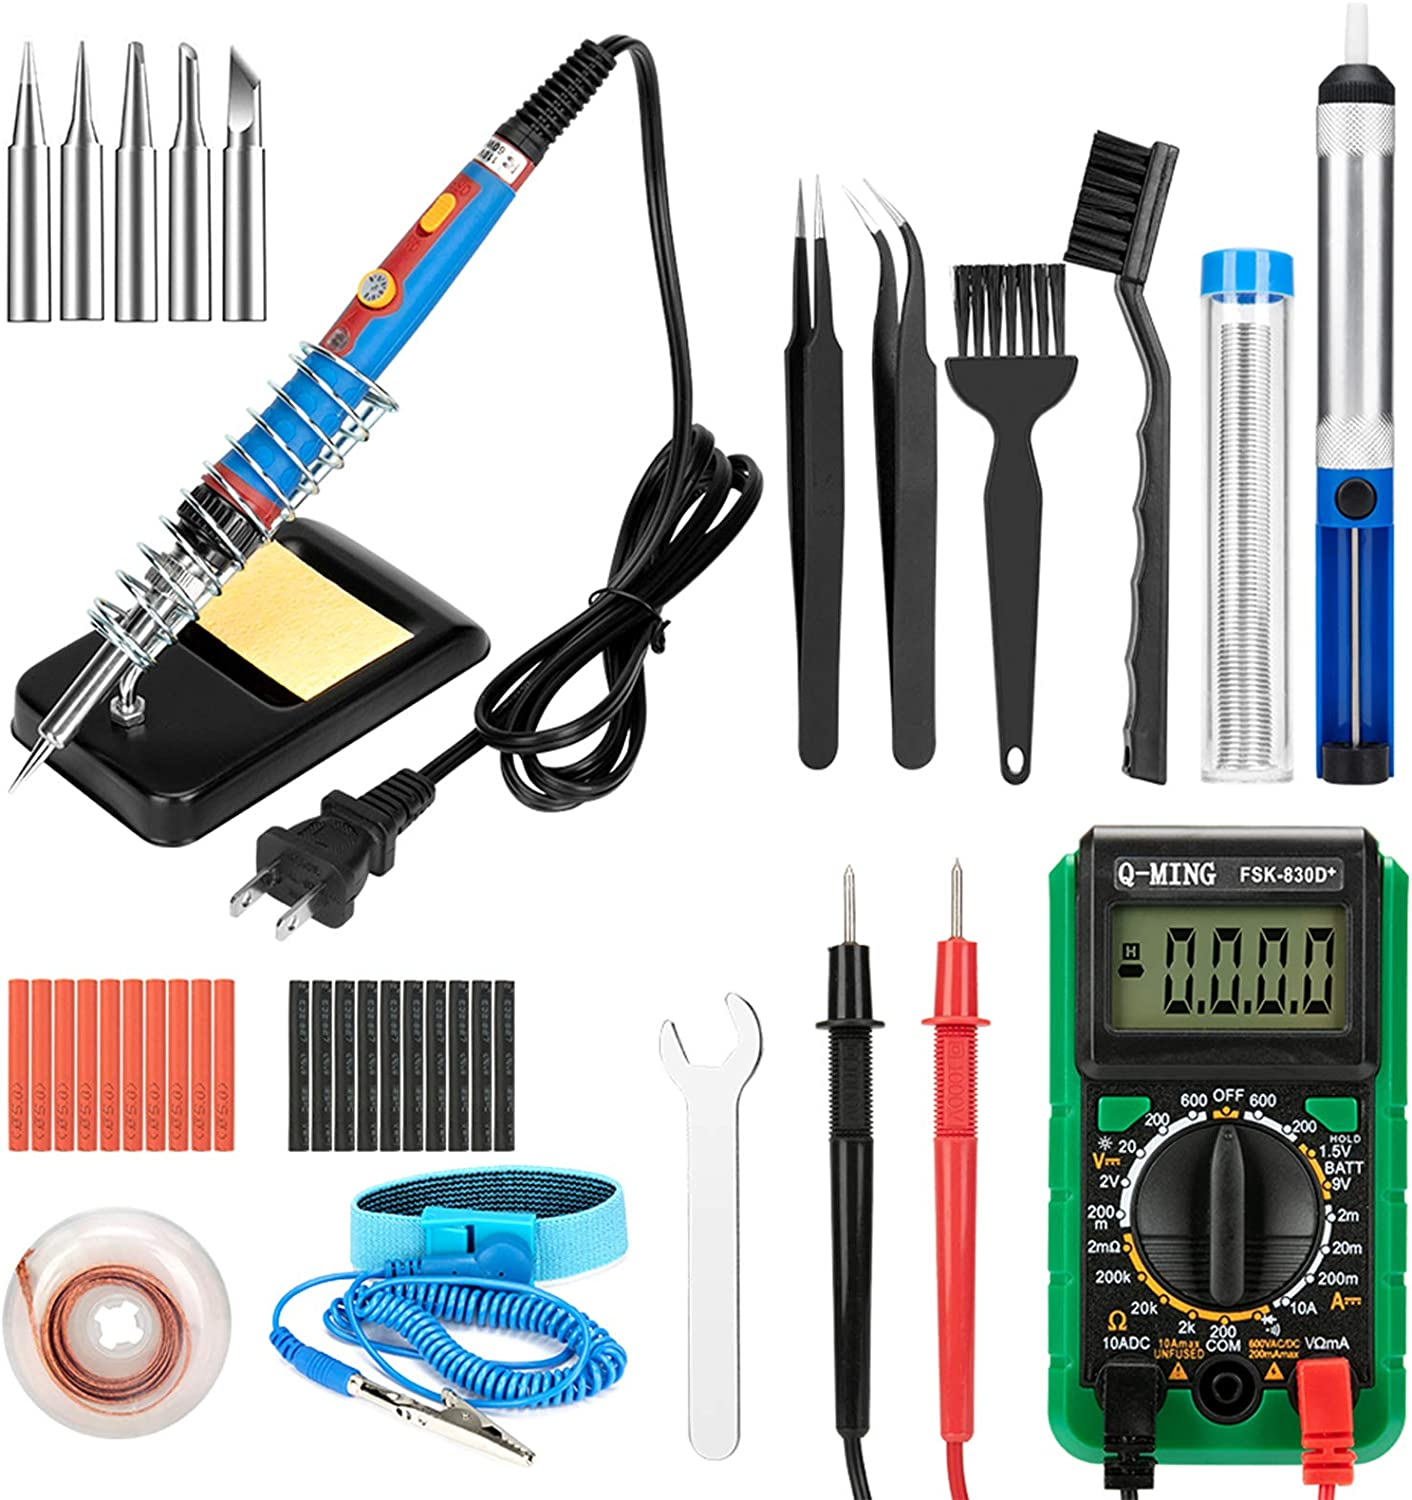 Soldering Iron Kit 43 in New color 1 Kits Upgraded Adjustable Jacksonville Mall T